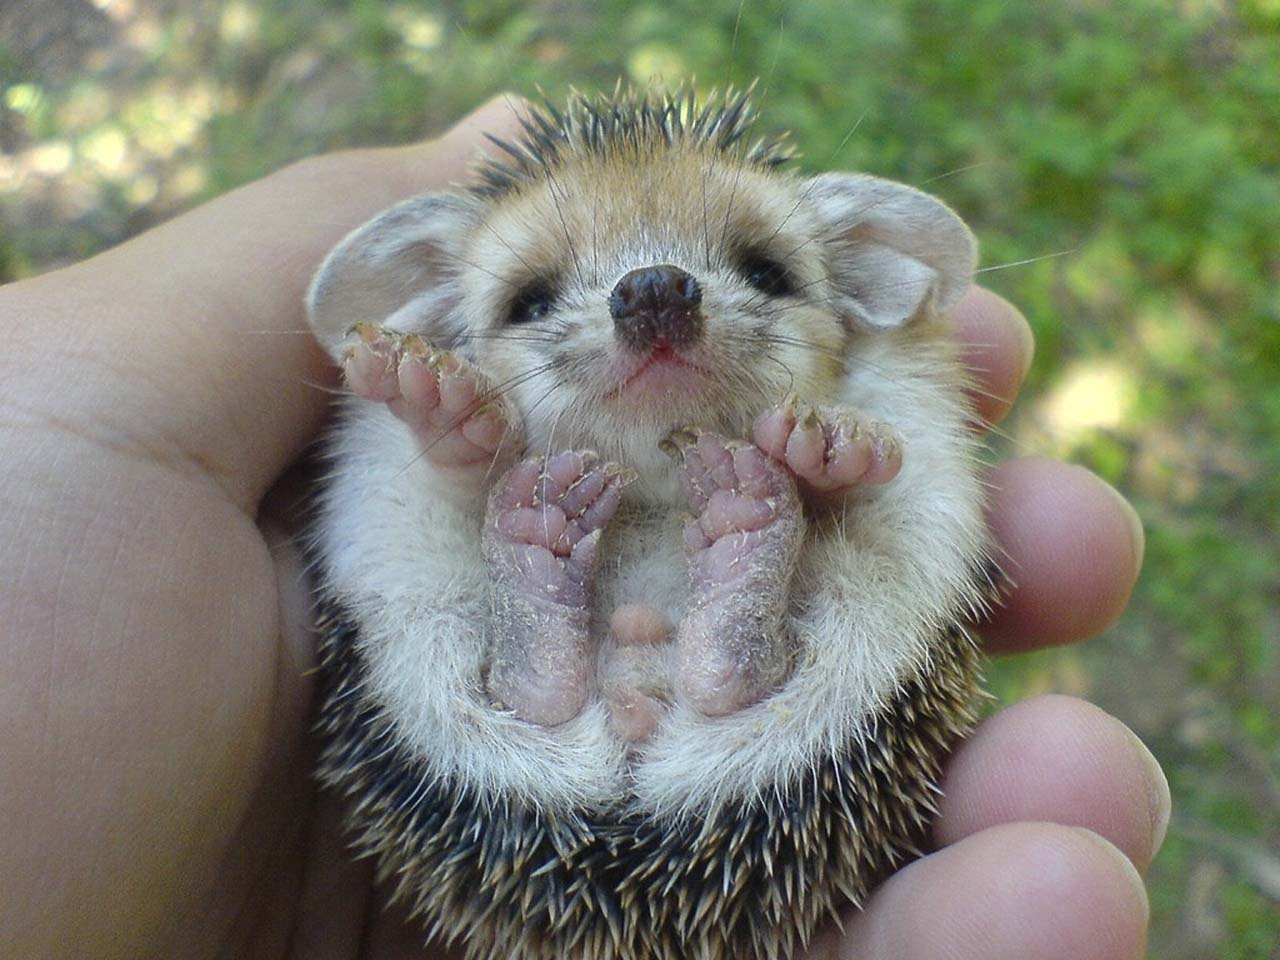 27 Adorable & Tiny Animals That Are Too Cute To Handle #19: Hedgehog